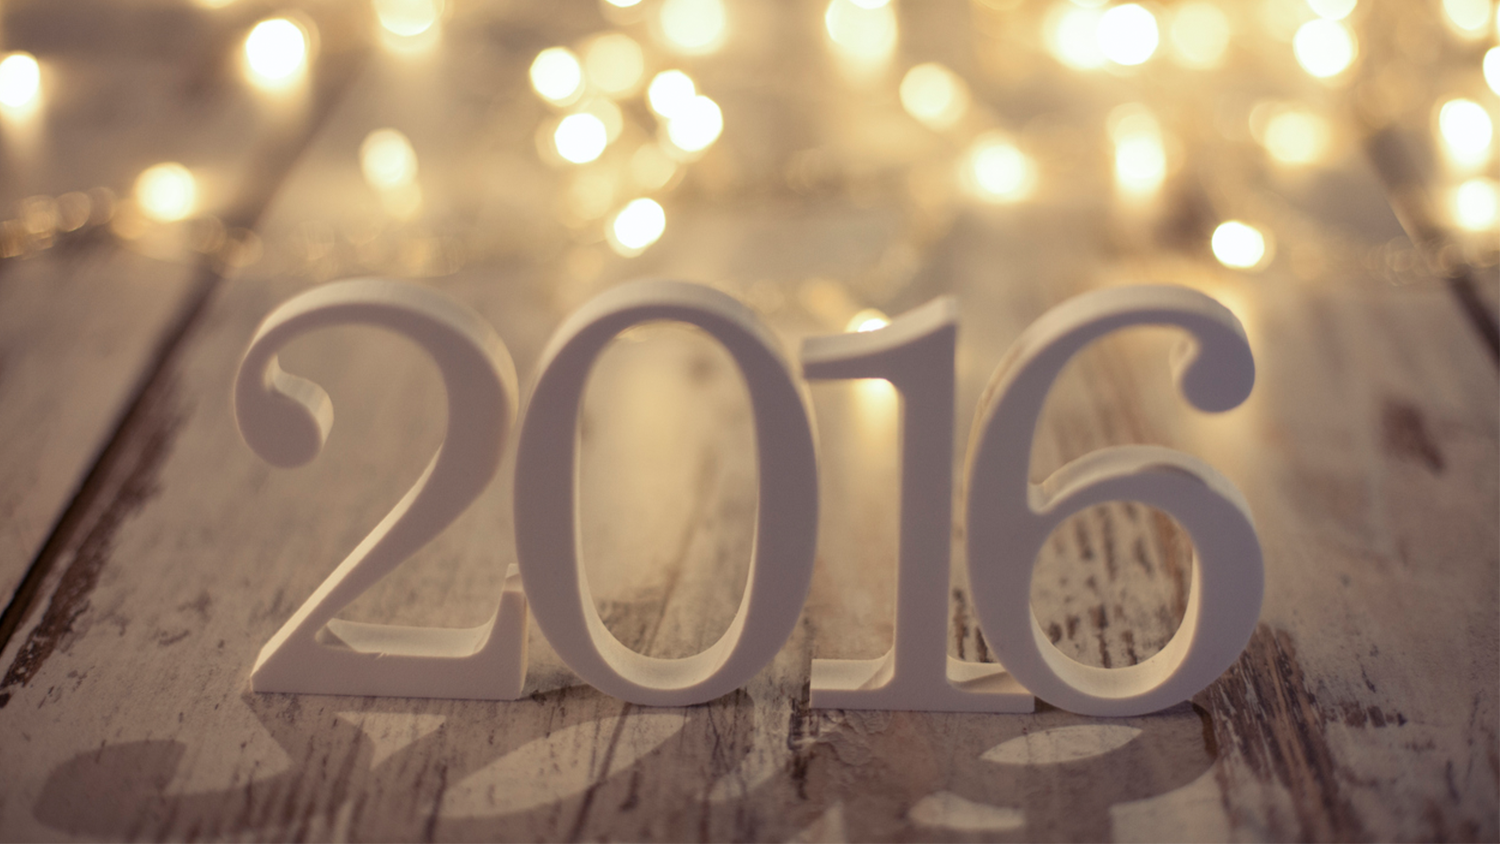 2016review-blog-122616